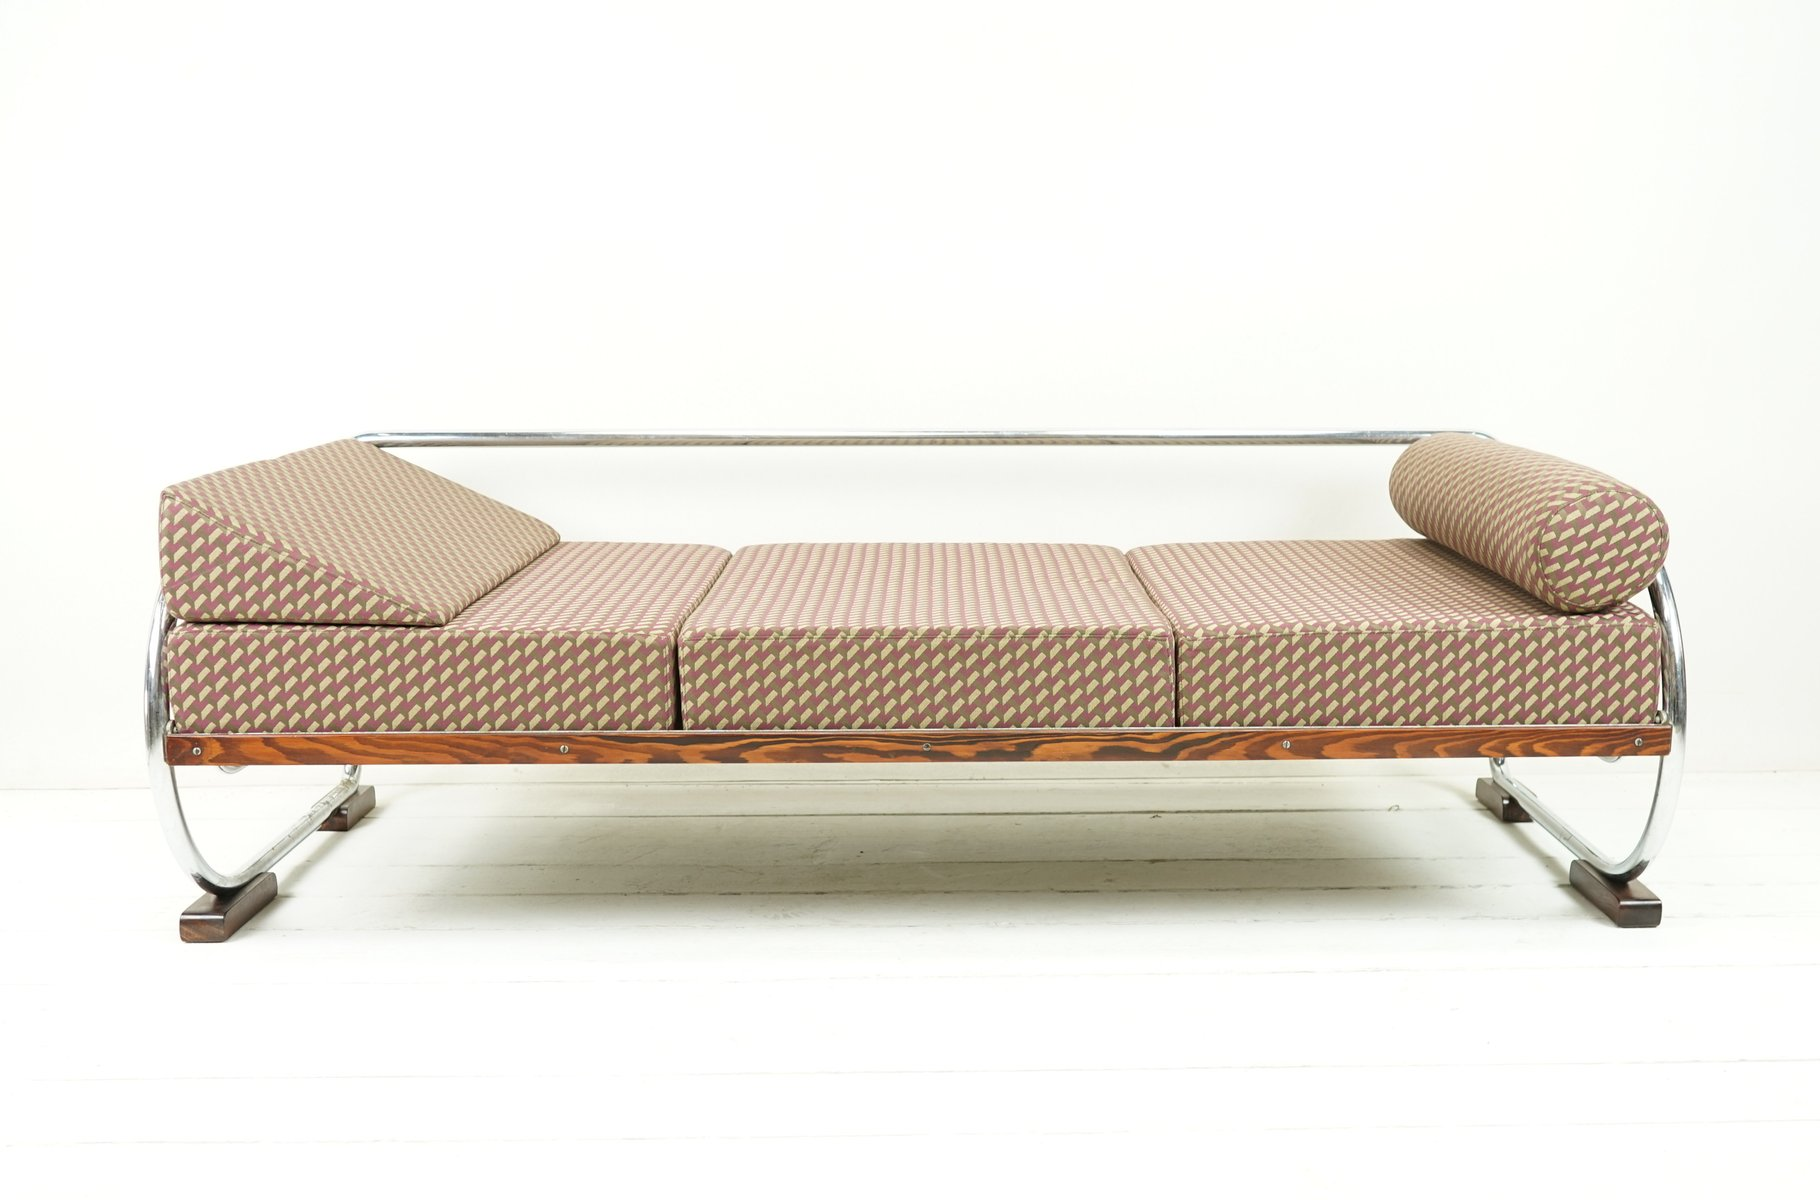 Bauhaus Daybed Sofa in 3DFabric from Gottwald 1930s for sale at Pamono